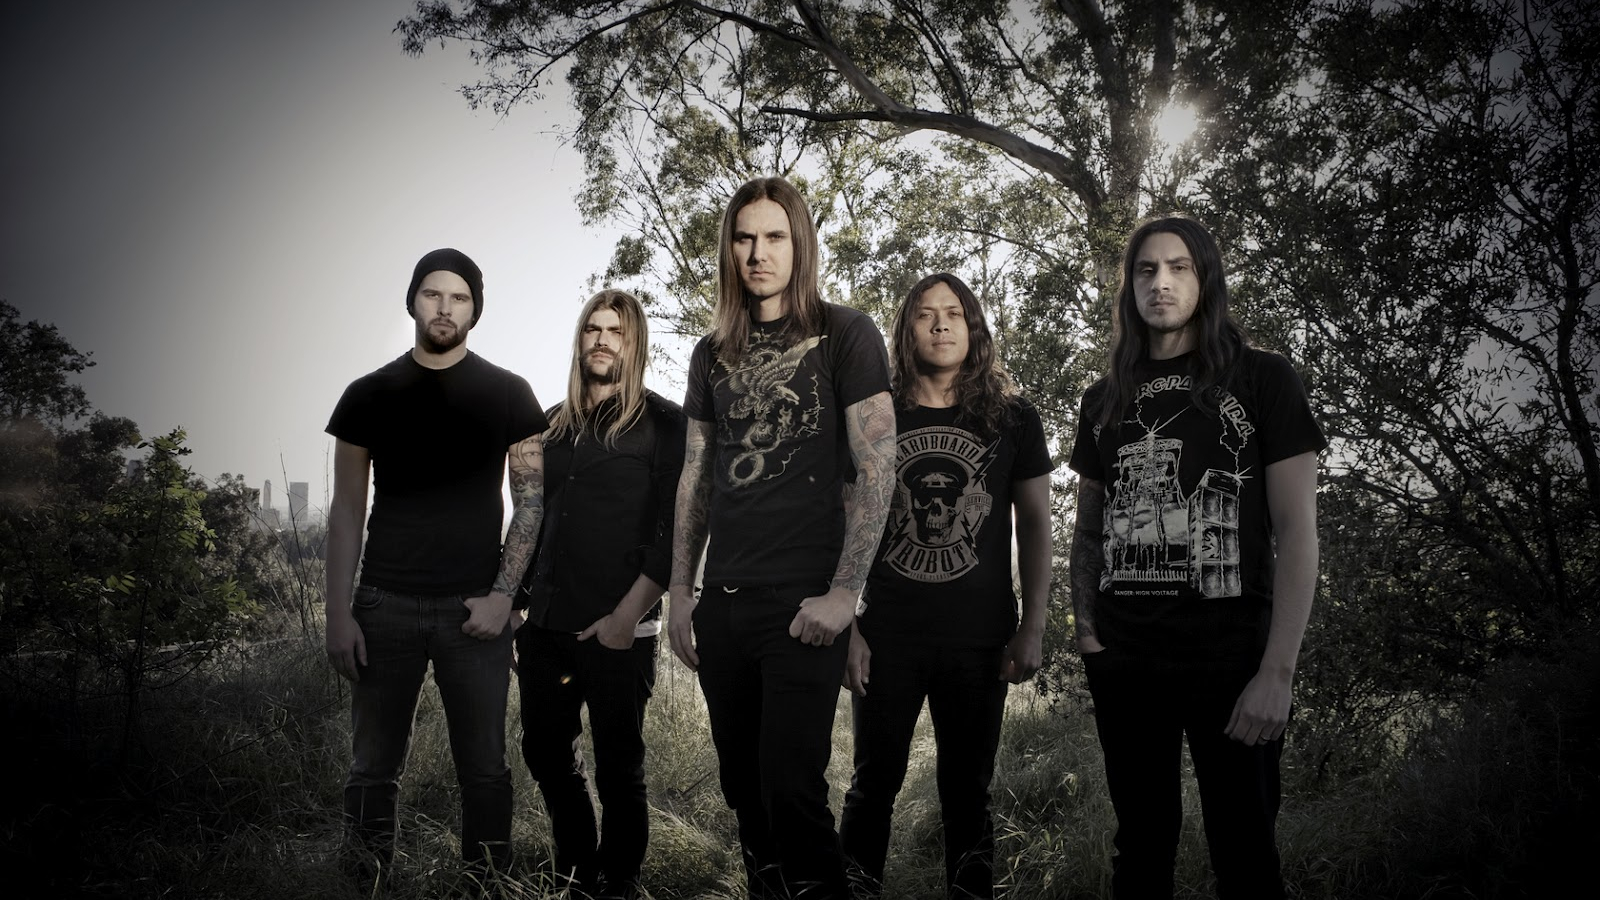 Free Download As I Lay Dying Metal Band 7481 Wallpaper Wallpaper